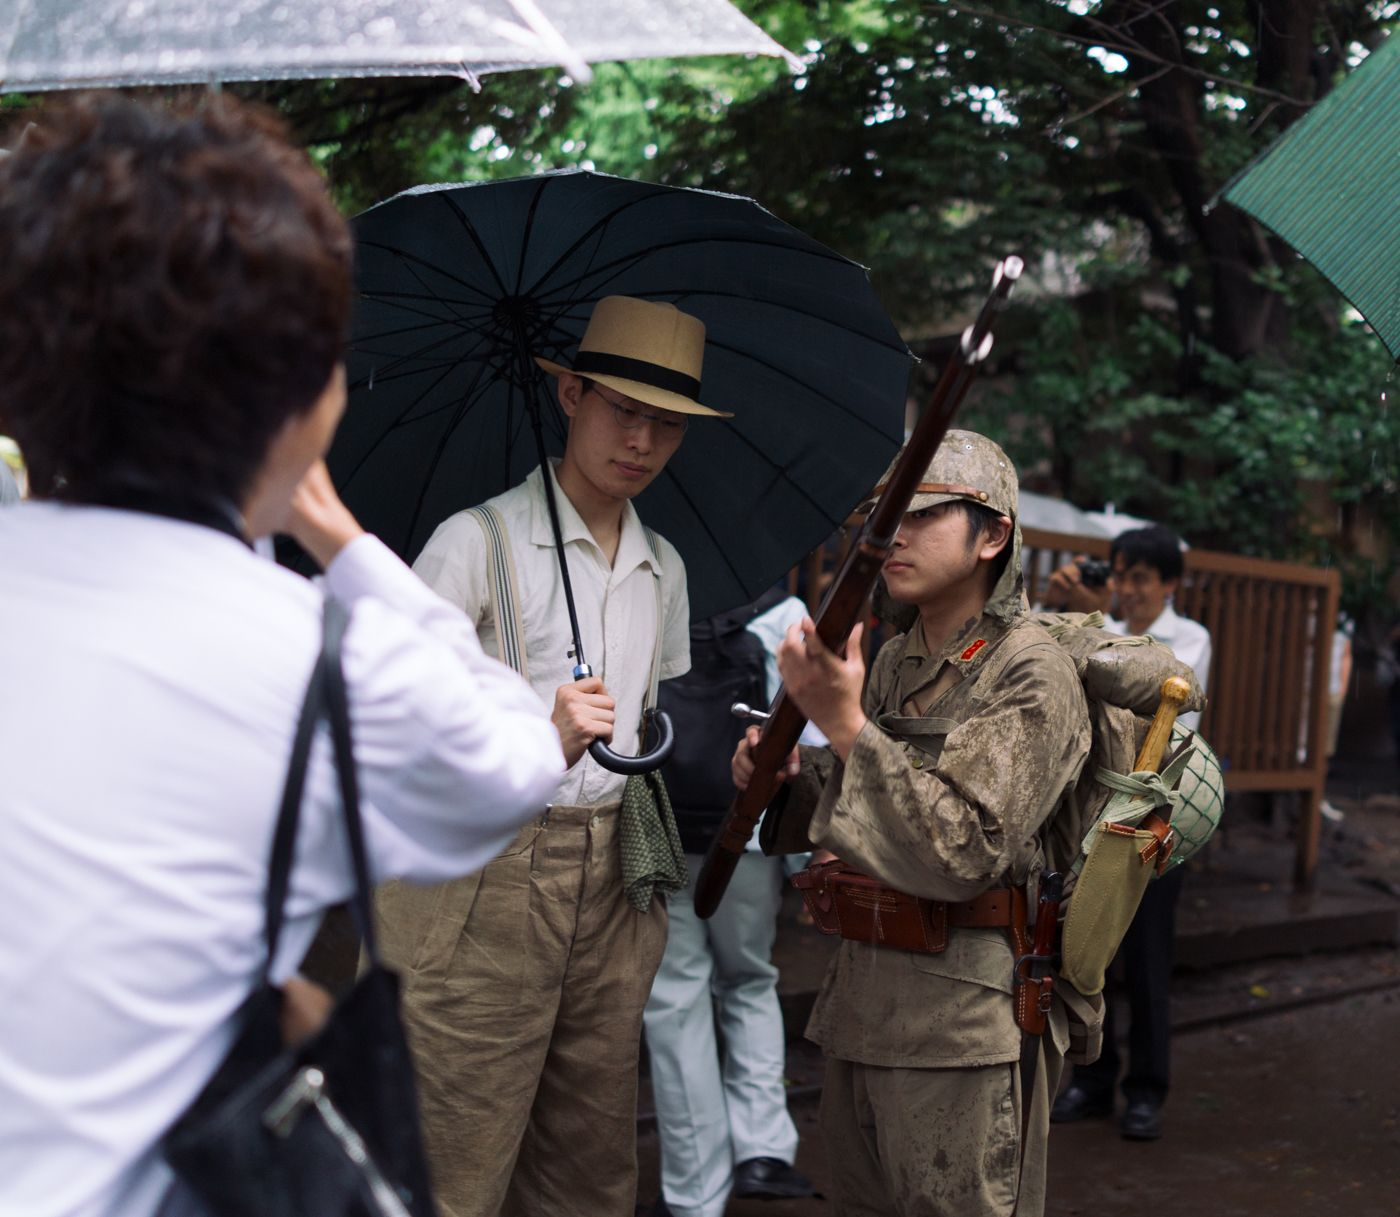 A grandma asks a teenager, dressed in an Imperial Japan uniform, to take a photo with her grandson (not pictured).